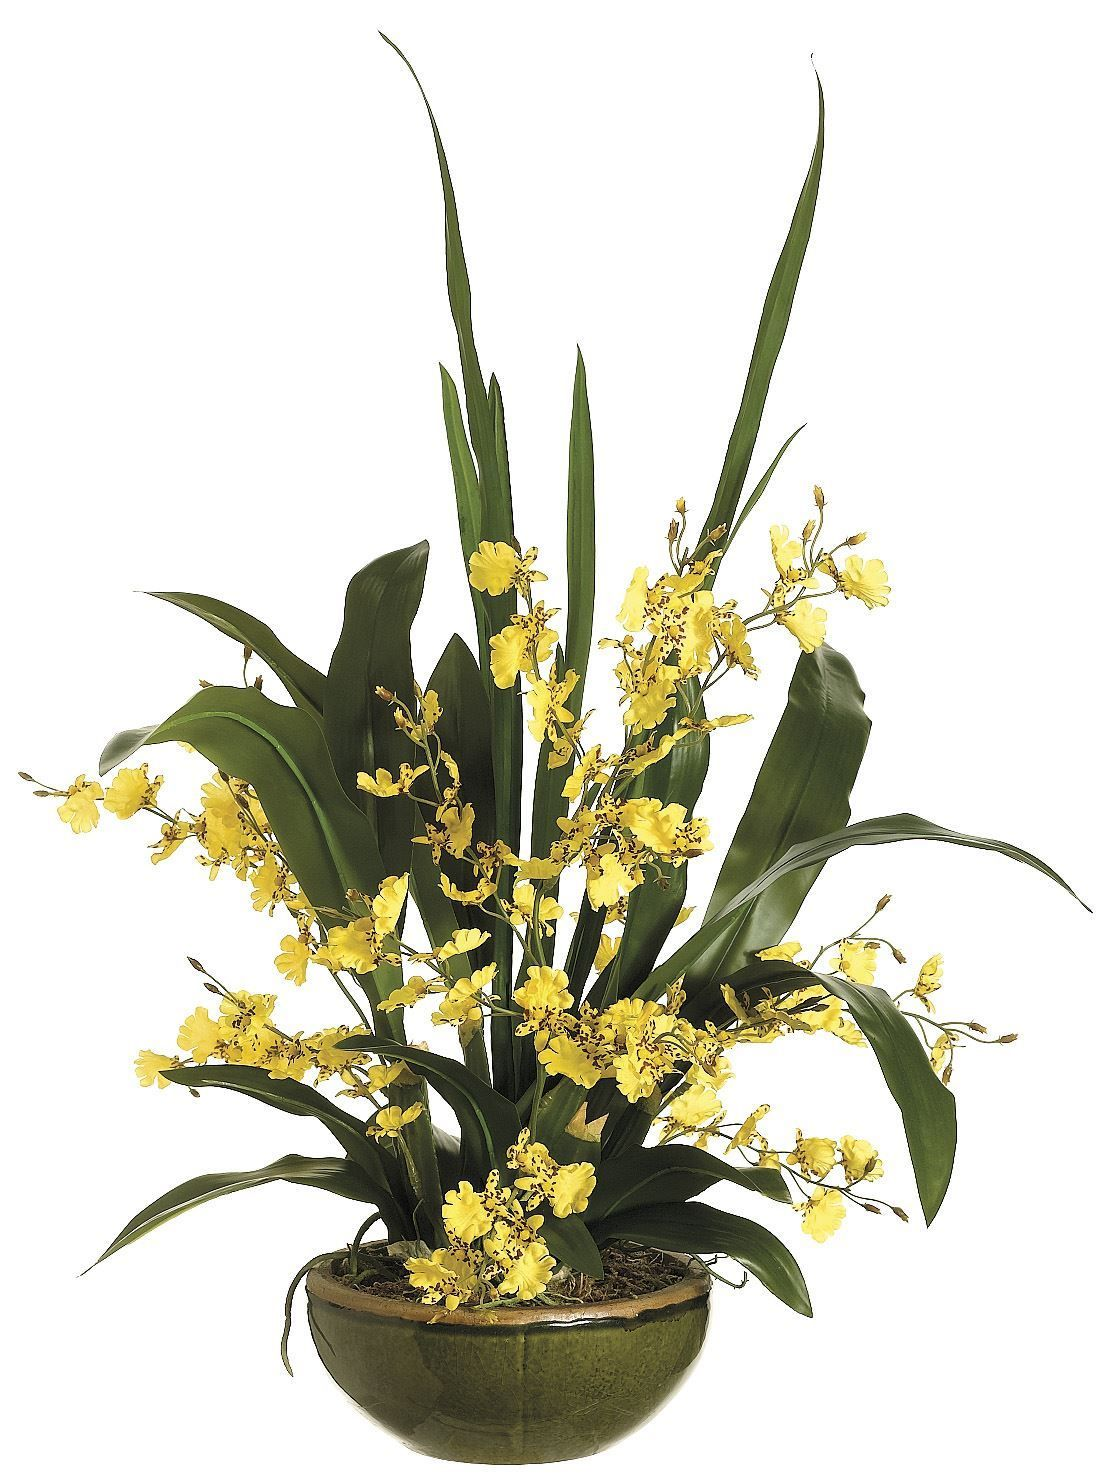 Lifelike Yellow Oncidium Orchid Arrangement In Round Green Textured Ceramic Bowl Orchid Flower Arrangements Oncidium Orchids Orchid Arrangements